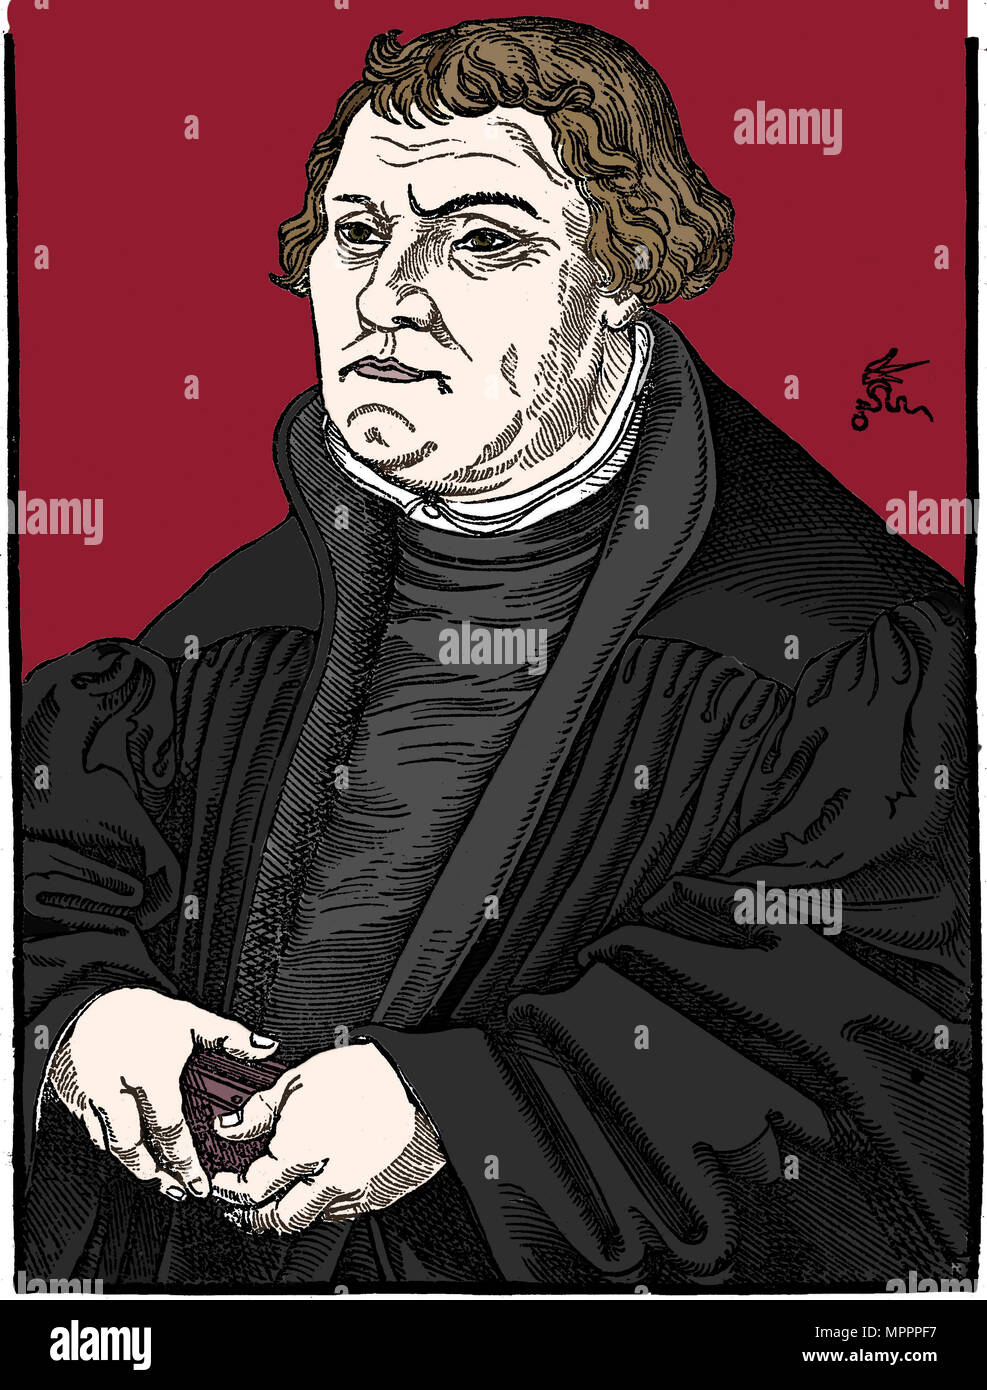 Martin Luther German Protestant reformer, 1546. Artist: Unknown. - Stock Image